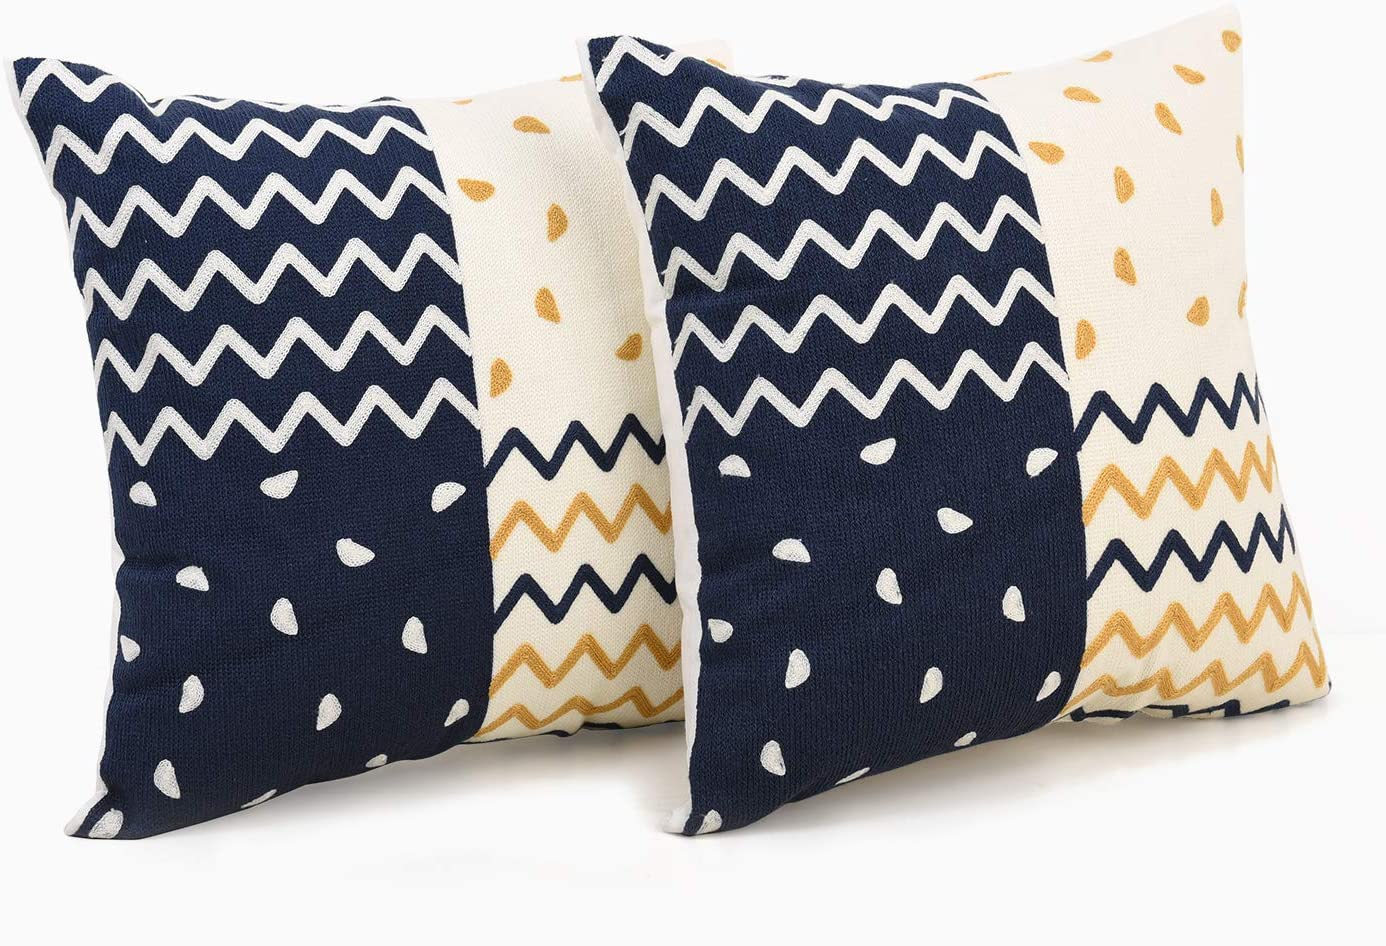 TEXPLUS Pack of 2 Decorative Geometric Pattern Square Embroidered Cotton Throw Cushion Covers (Blue & Golden Wave, 18Wx18L)